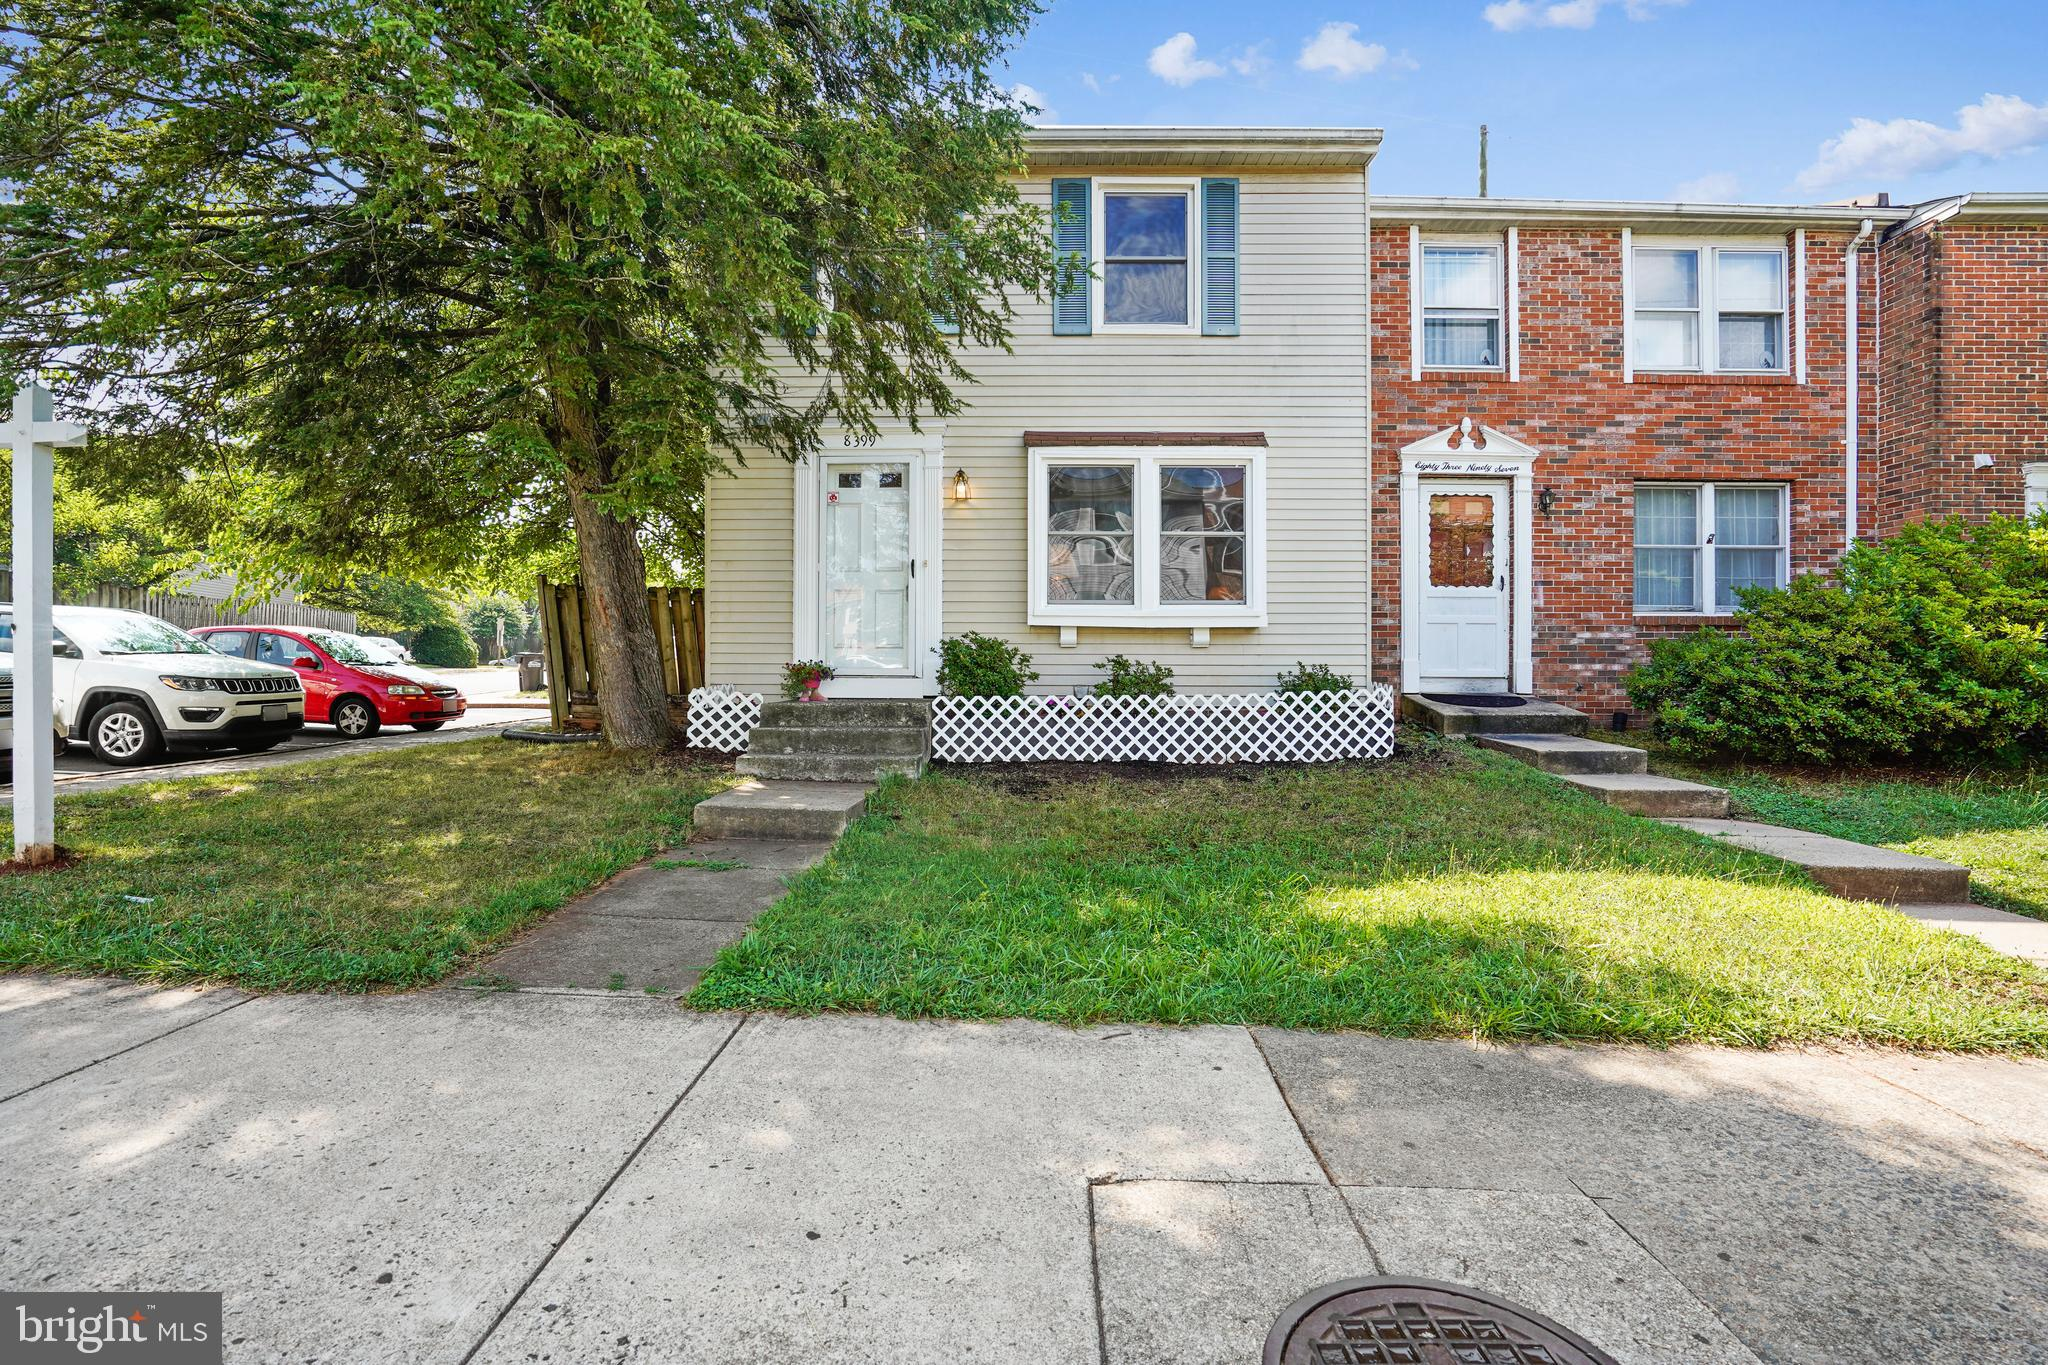 Opportunity to own an end unit town home that has been updated to include : Updated Kitchen with Granite counters, Stainless  Appliances . Hardwoods on the main level Separate Dining Area Hot Water Heater 2013 HVAC 2002 Thermopane Windows in 2010. Full bath in lower level updated